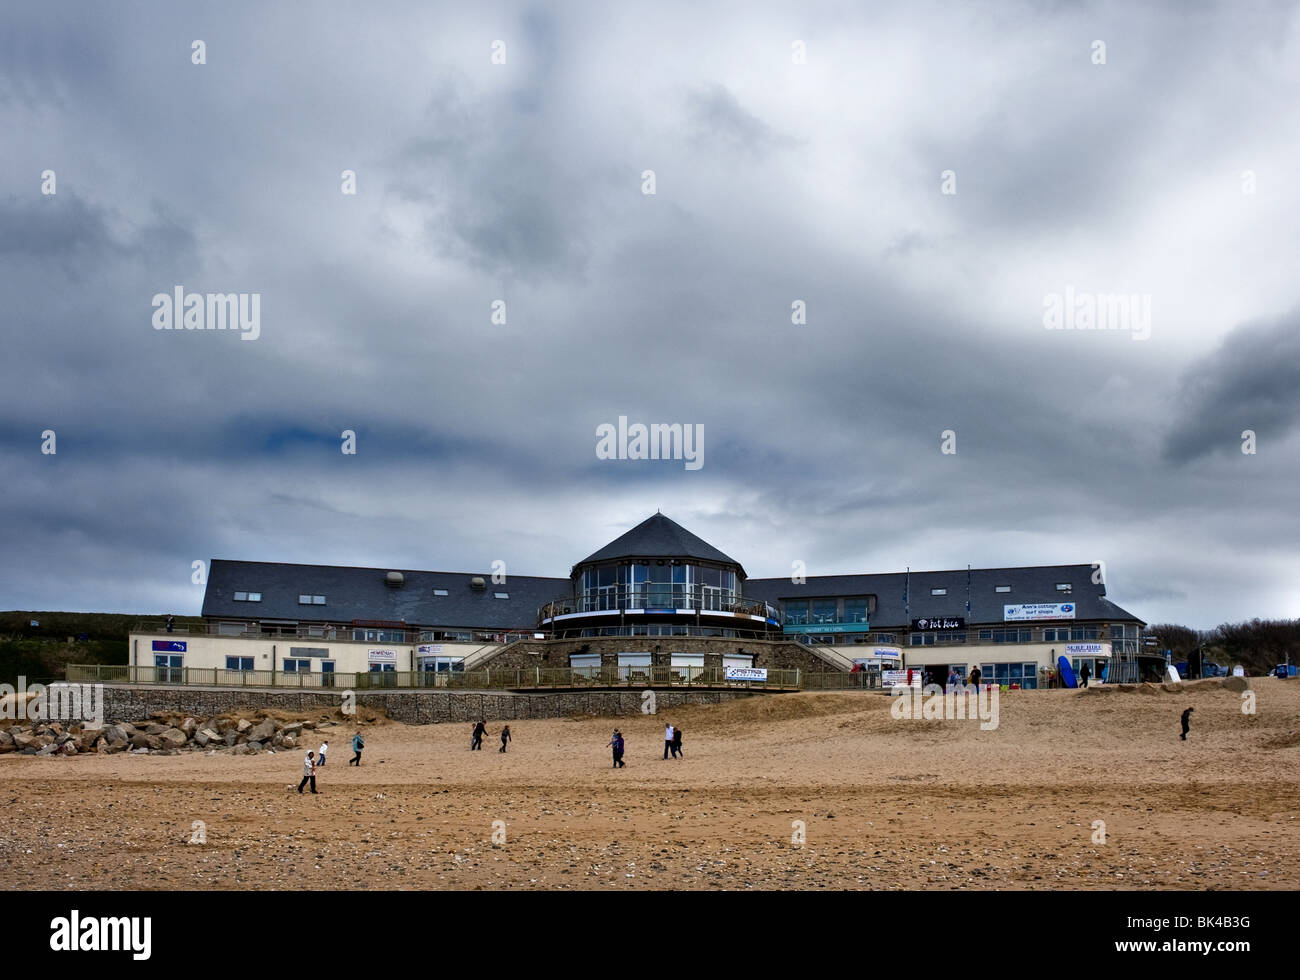 Fistral Blu cafe on Fistral Beach in Newquay in Cornwall.  Photo by Gordon Scammell - Stock Image